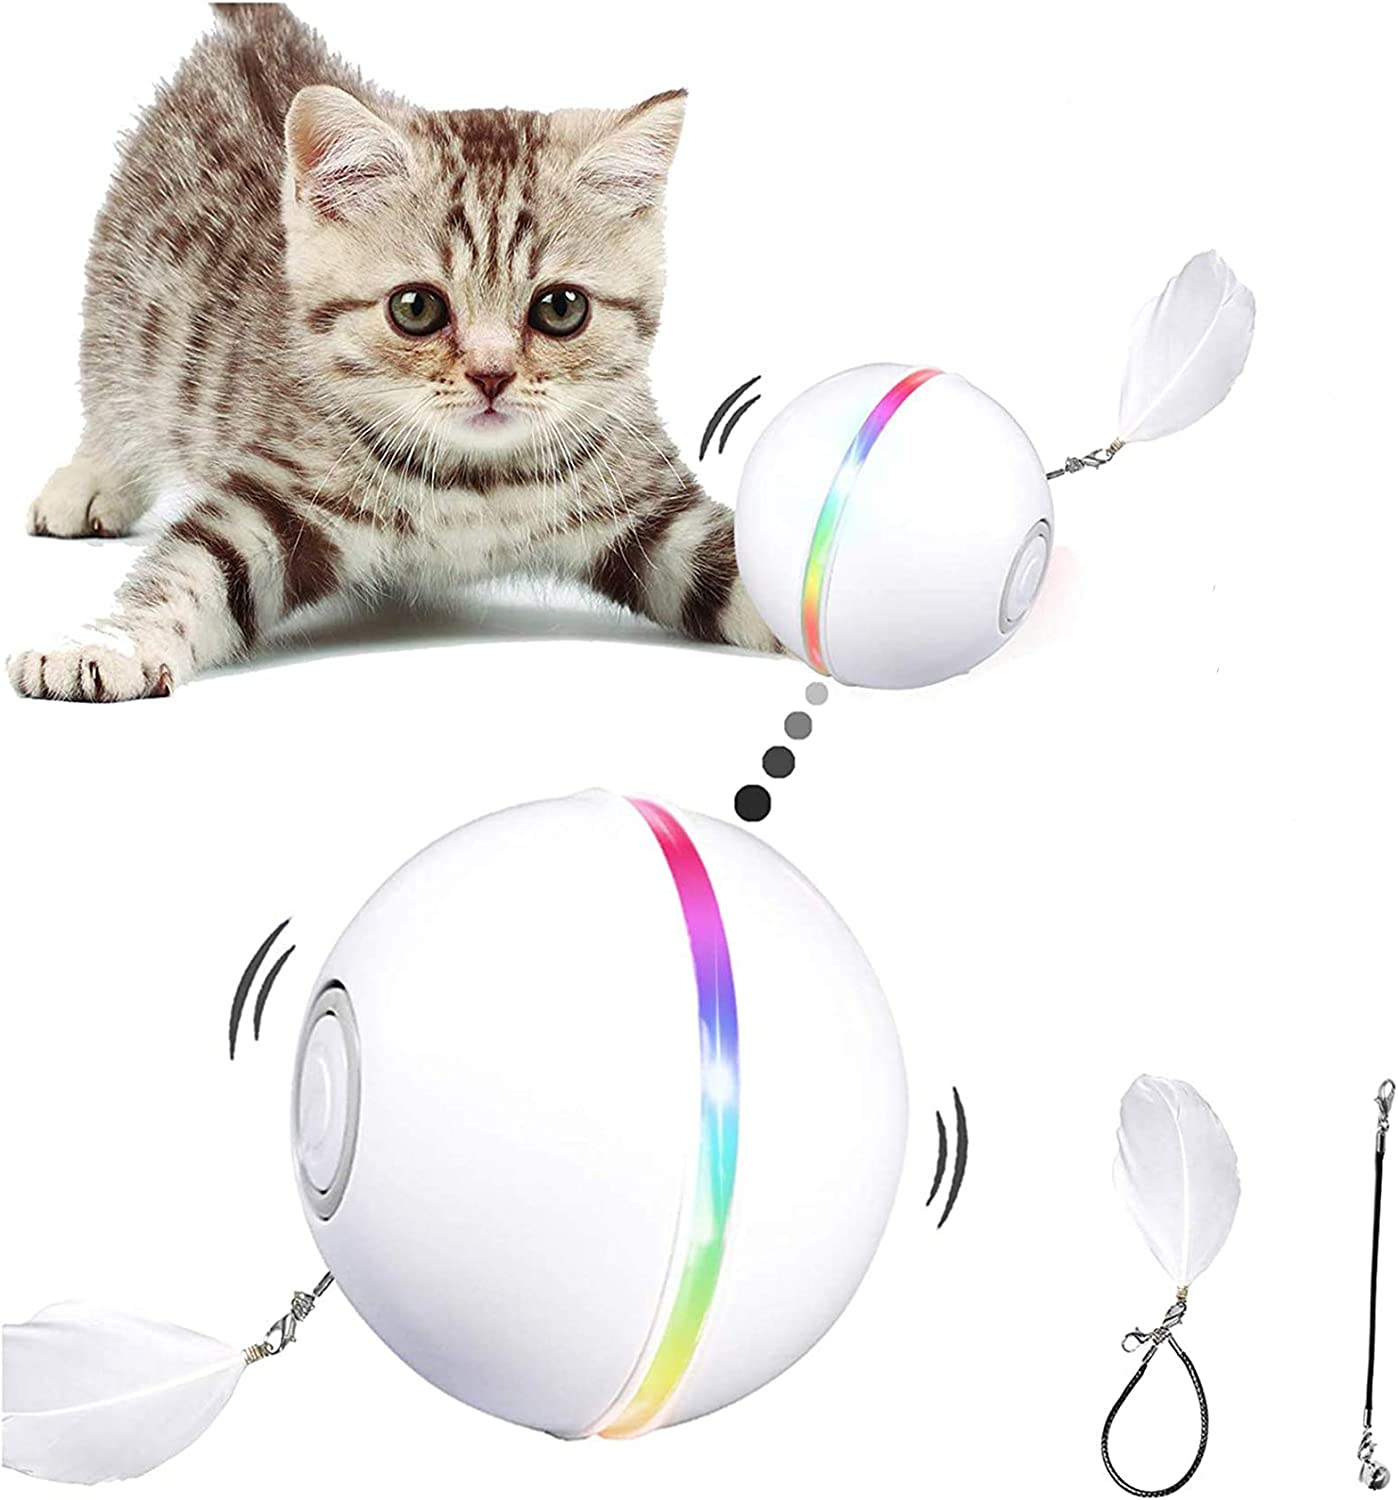 YOFUN Interactive Cat Toys, Automatic Cat Toy Ball, USB Charging Pet Toy, Built-in Spinning LED Light, Newest Version with 2 Lightening Modes & Attached Feather with Bell, Insert Catnip : Pet Supplies